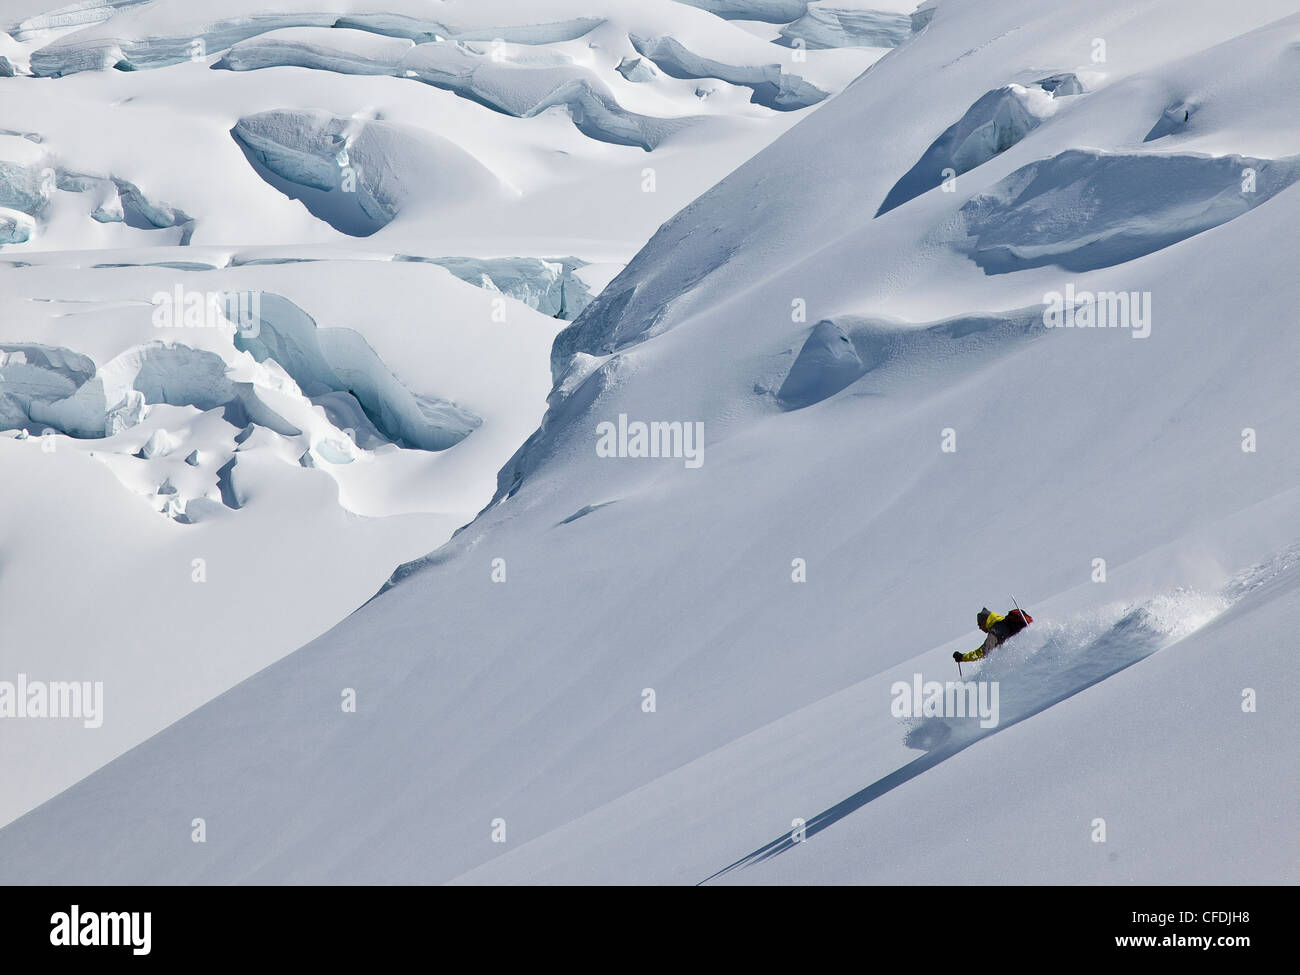 Backcountry skier skiing fresh powder in the Selkirk Range near the Fairy Meadows backcountry hut, British Columbia, - Stock Image